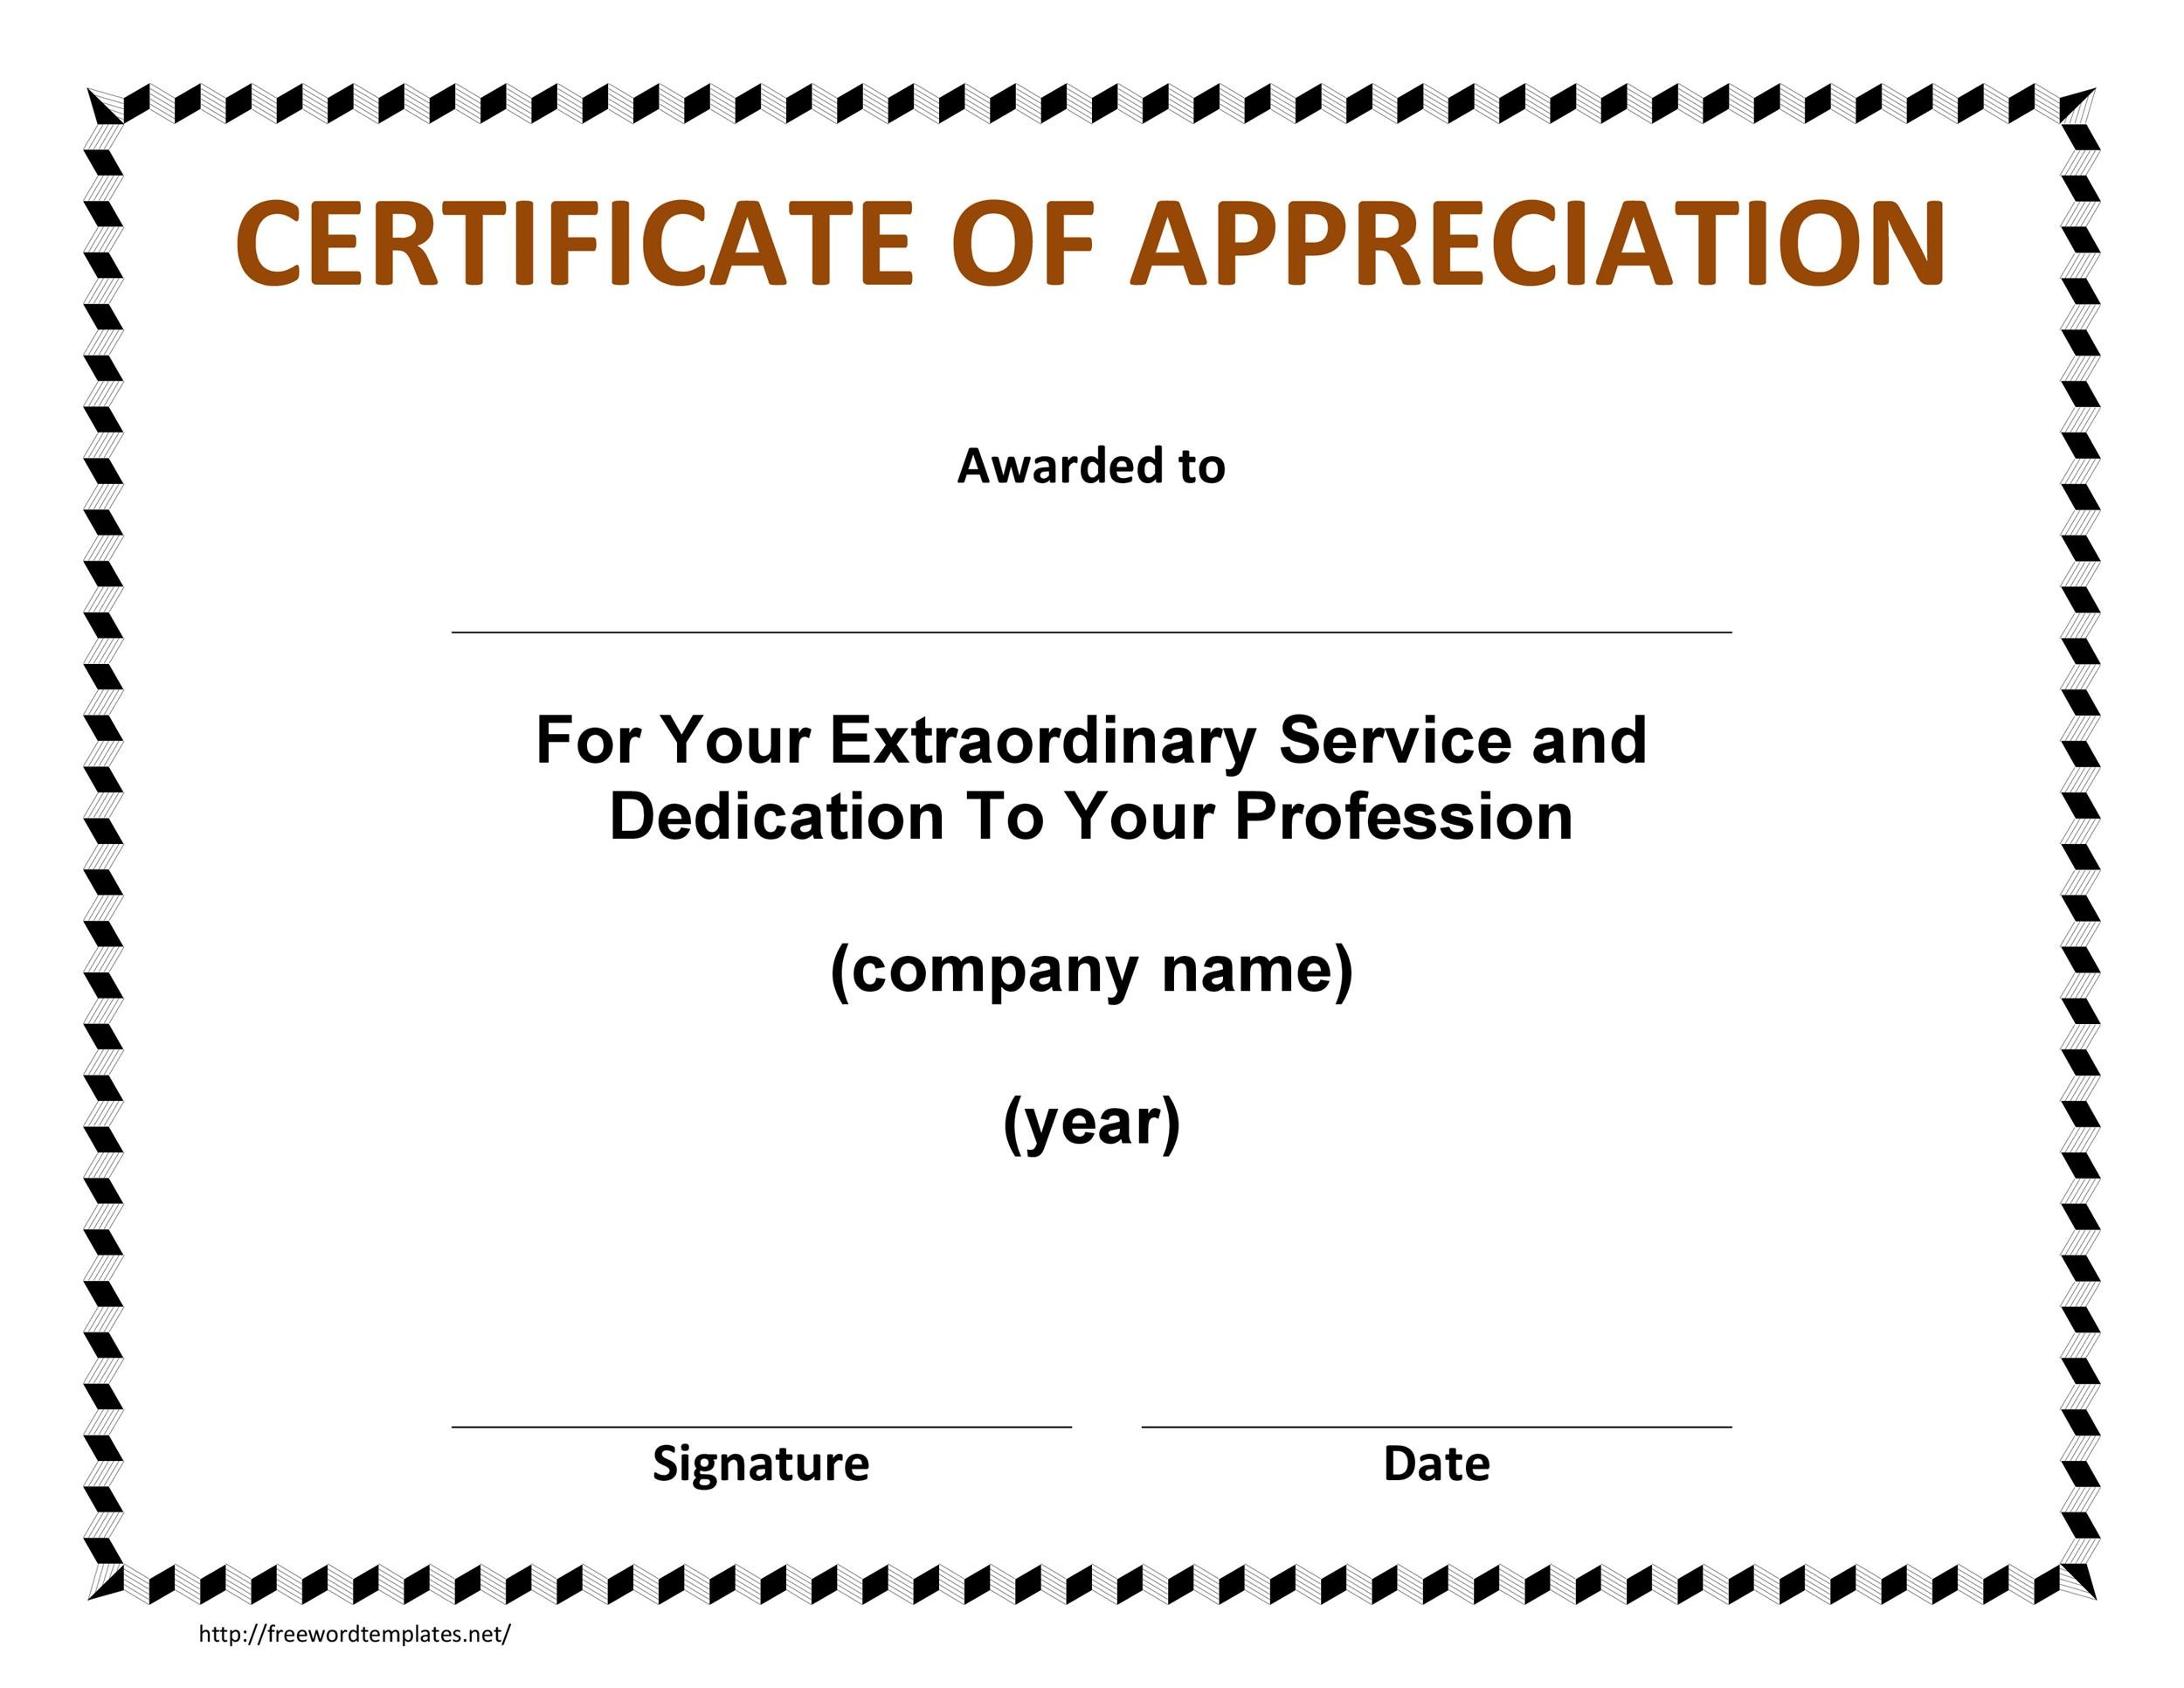 template certificate of appreciation